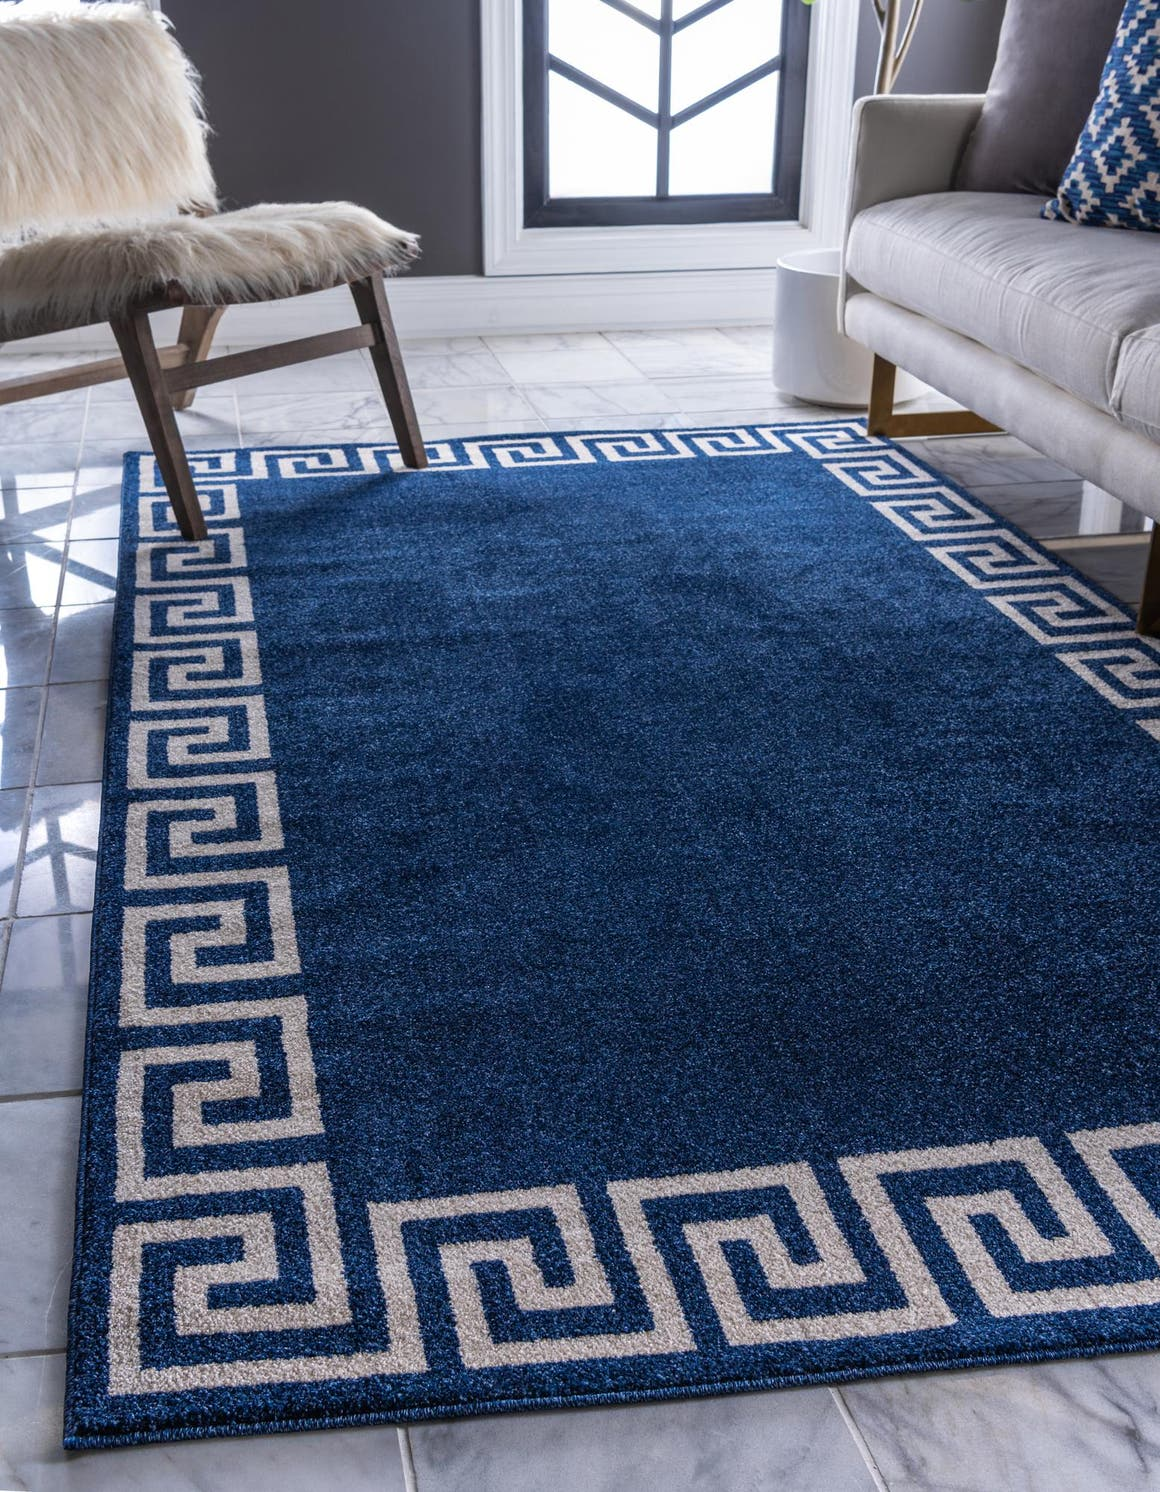 6' x 9' Greek Key Rug main image